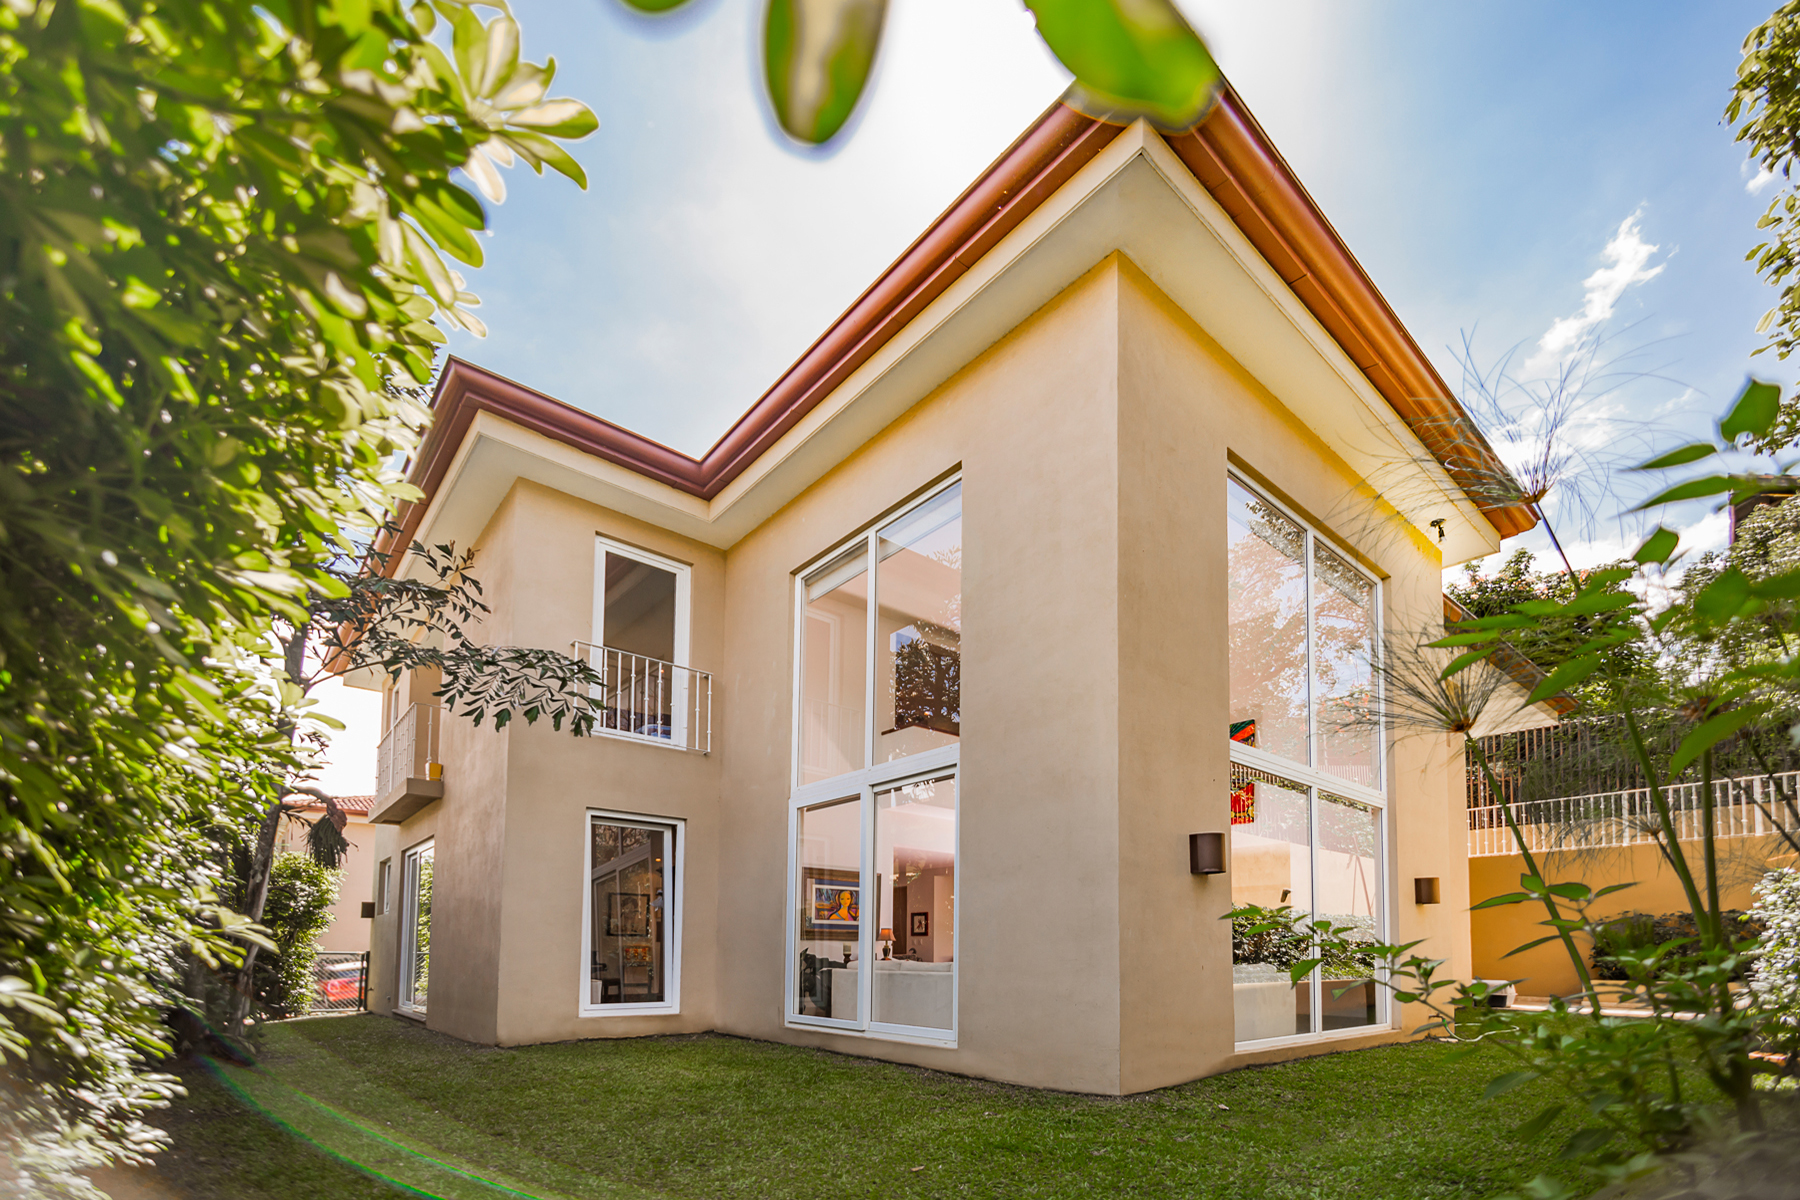 Single Family Homes for Sale at 4B/5B Family Home in Gated Community, house for sale in Escazú, San José Escazu, San Jose Costa Rica